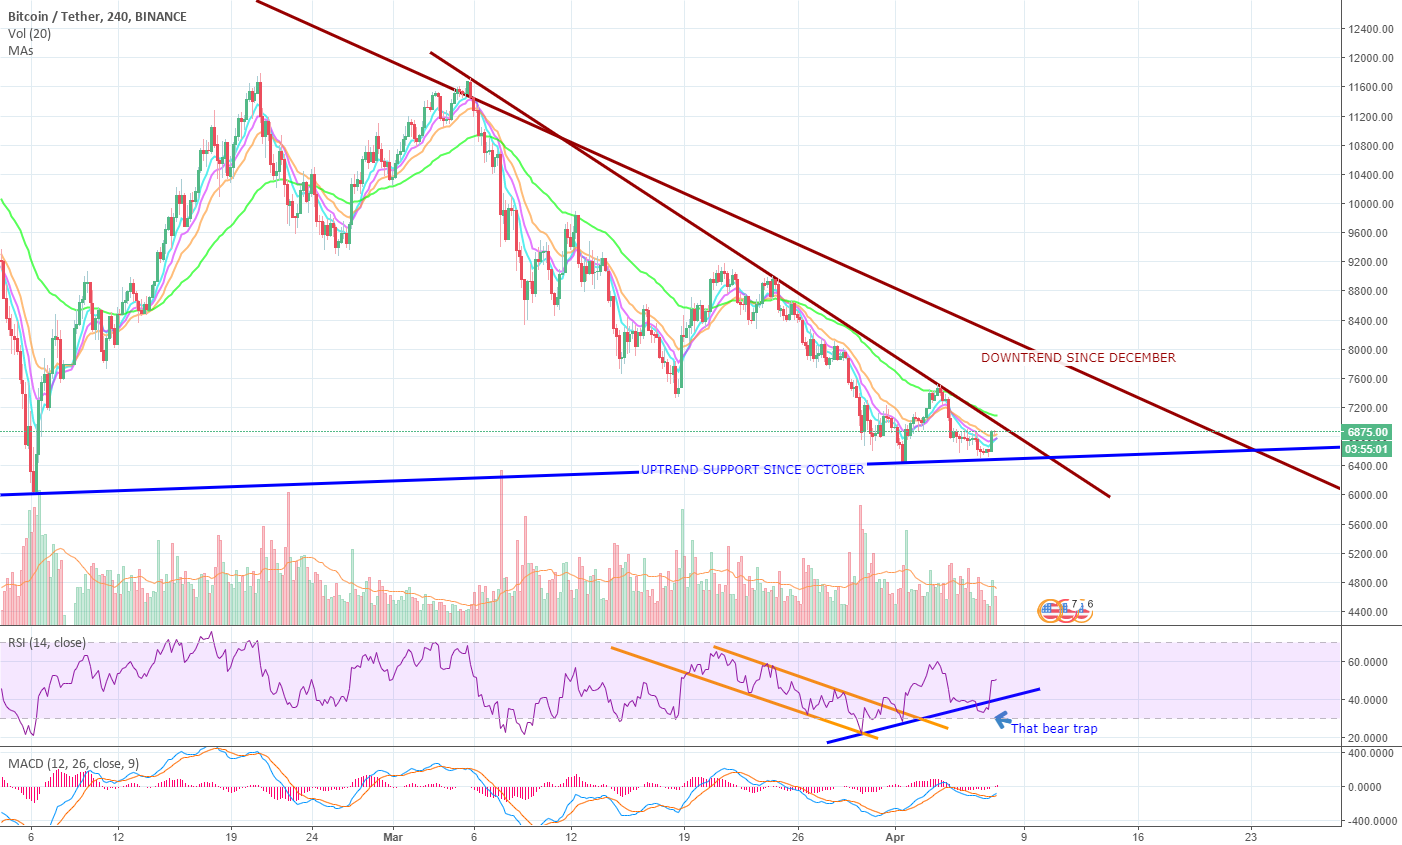 Bitcoin reaching Apex, Decision time